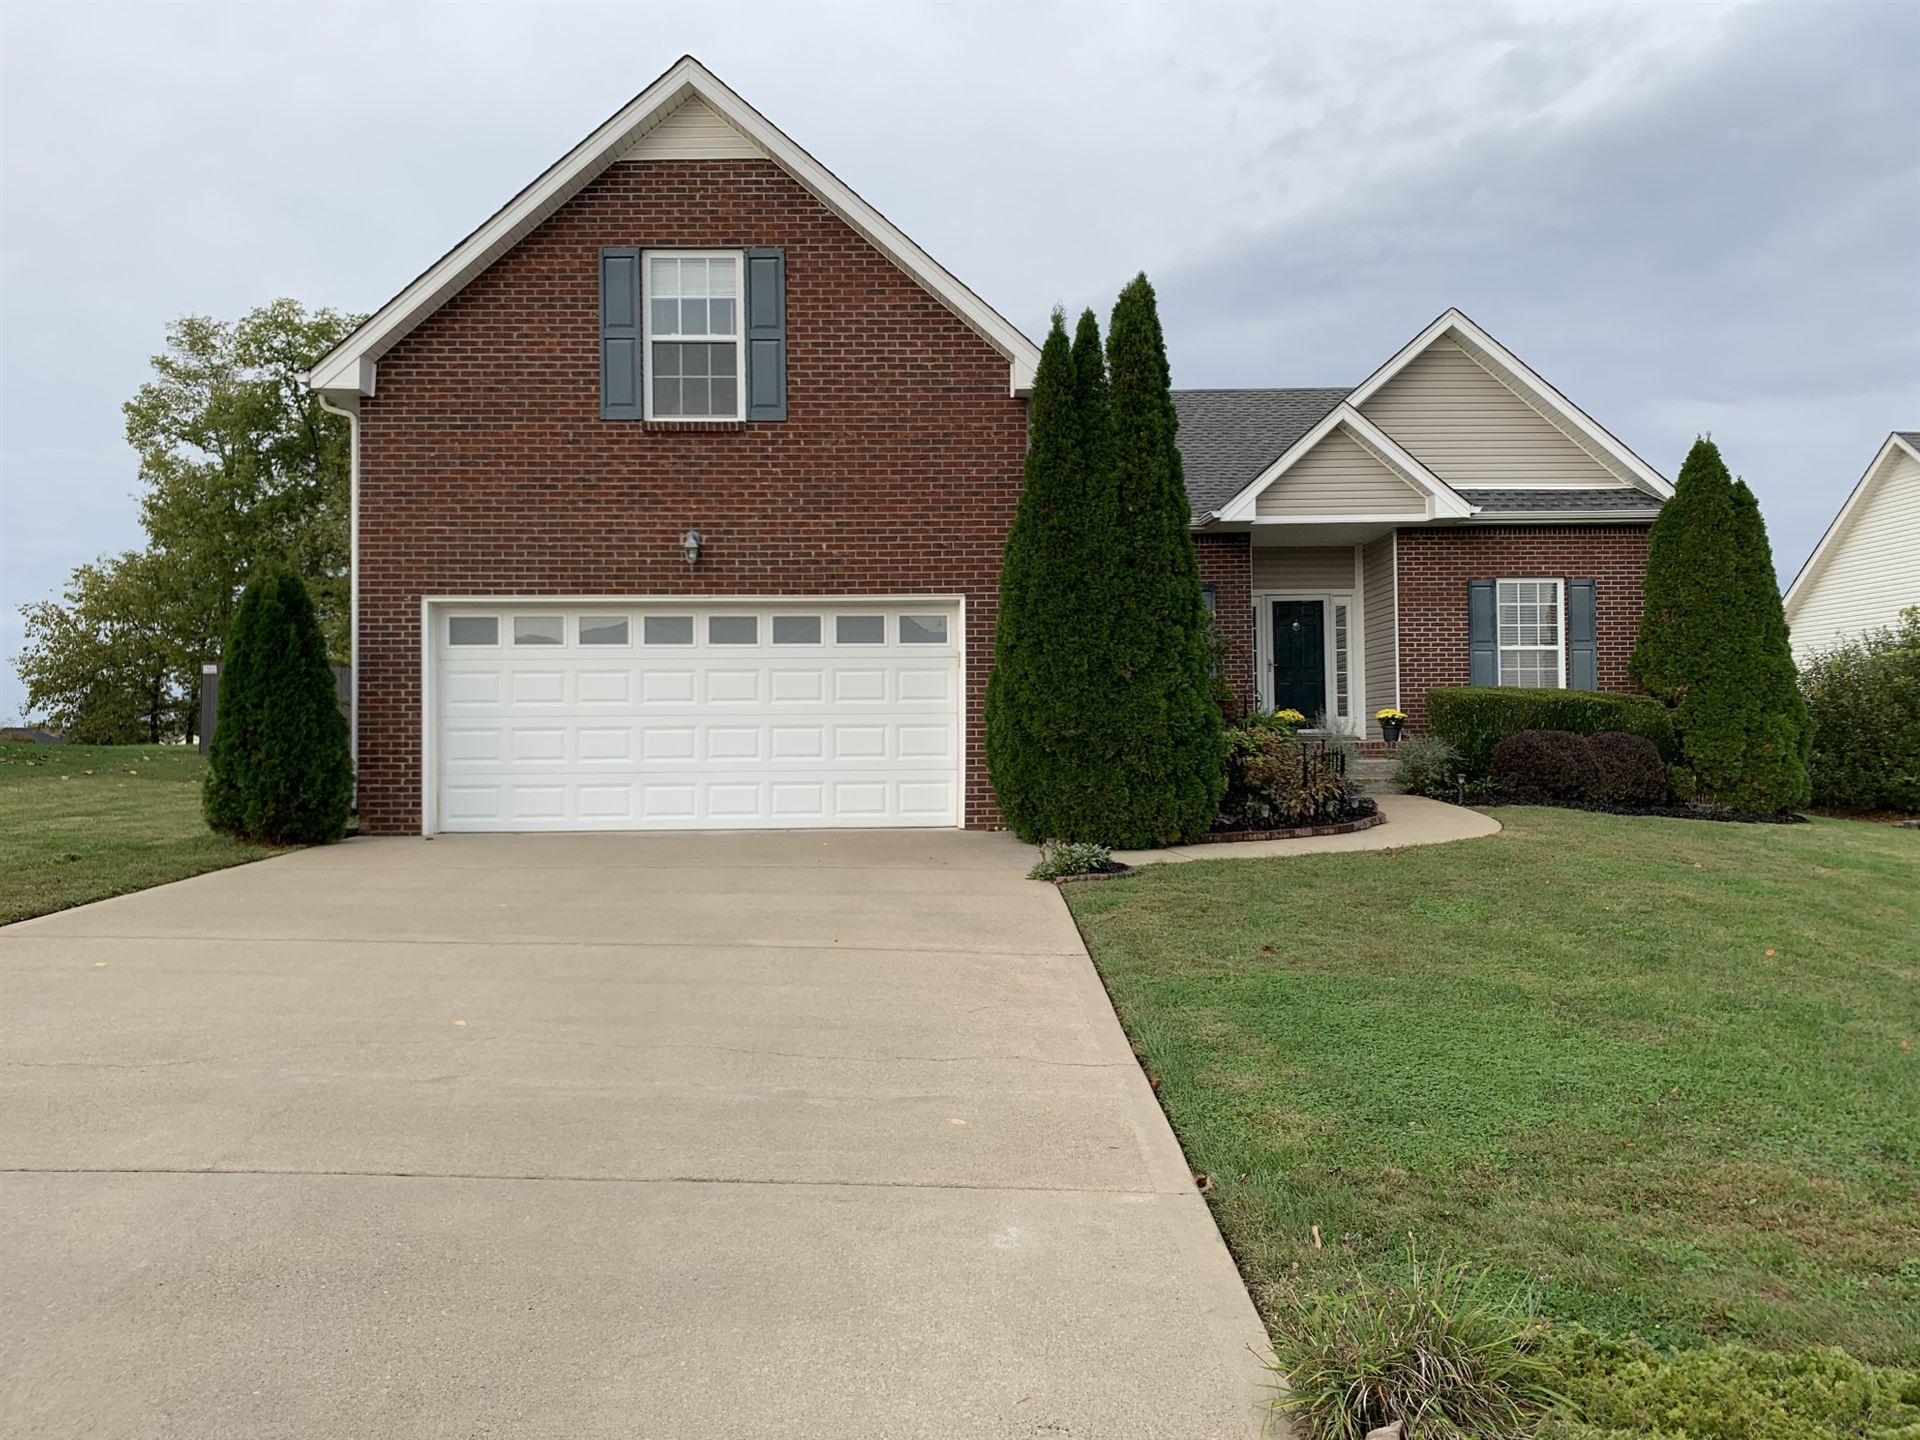 708 Shamrock Ct, Clarksville, TN 37043 - MLS#: 2201027